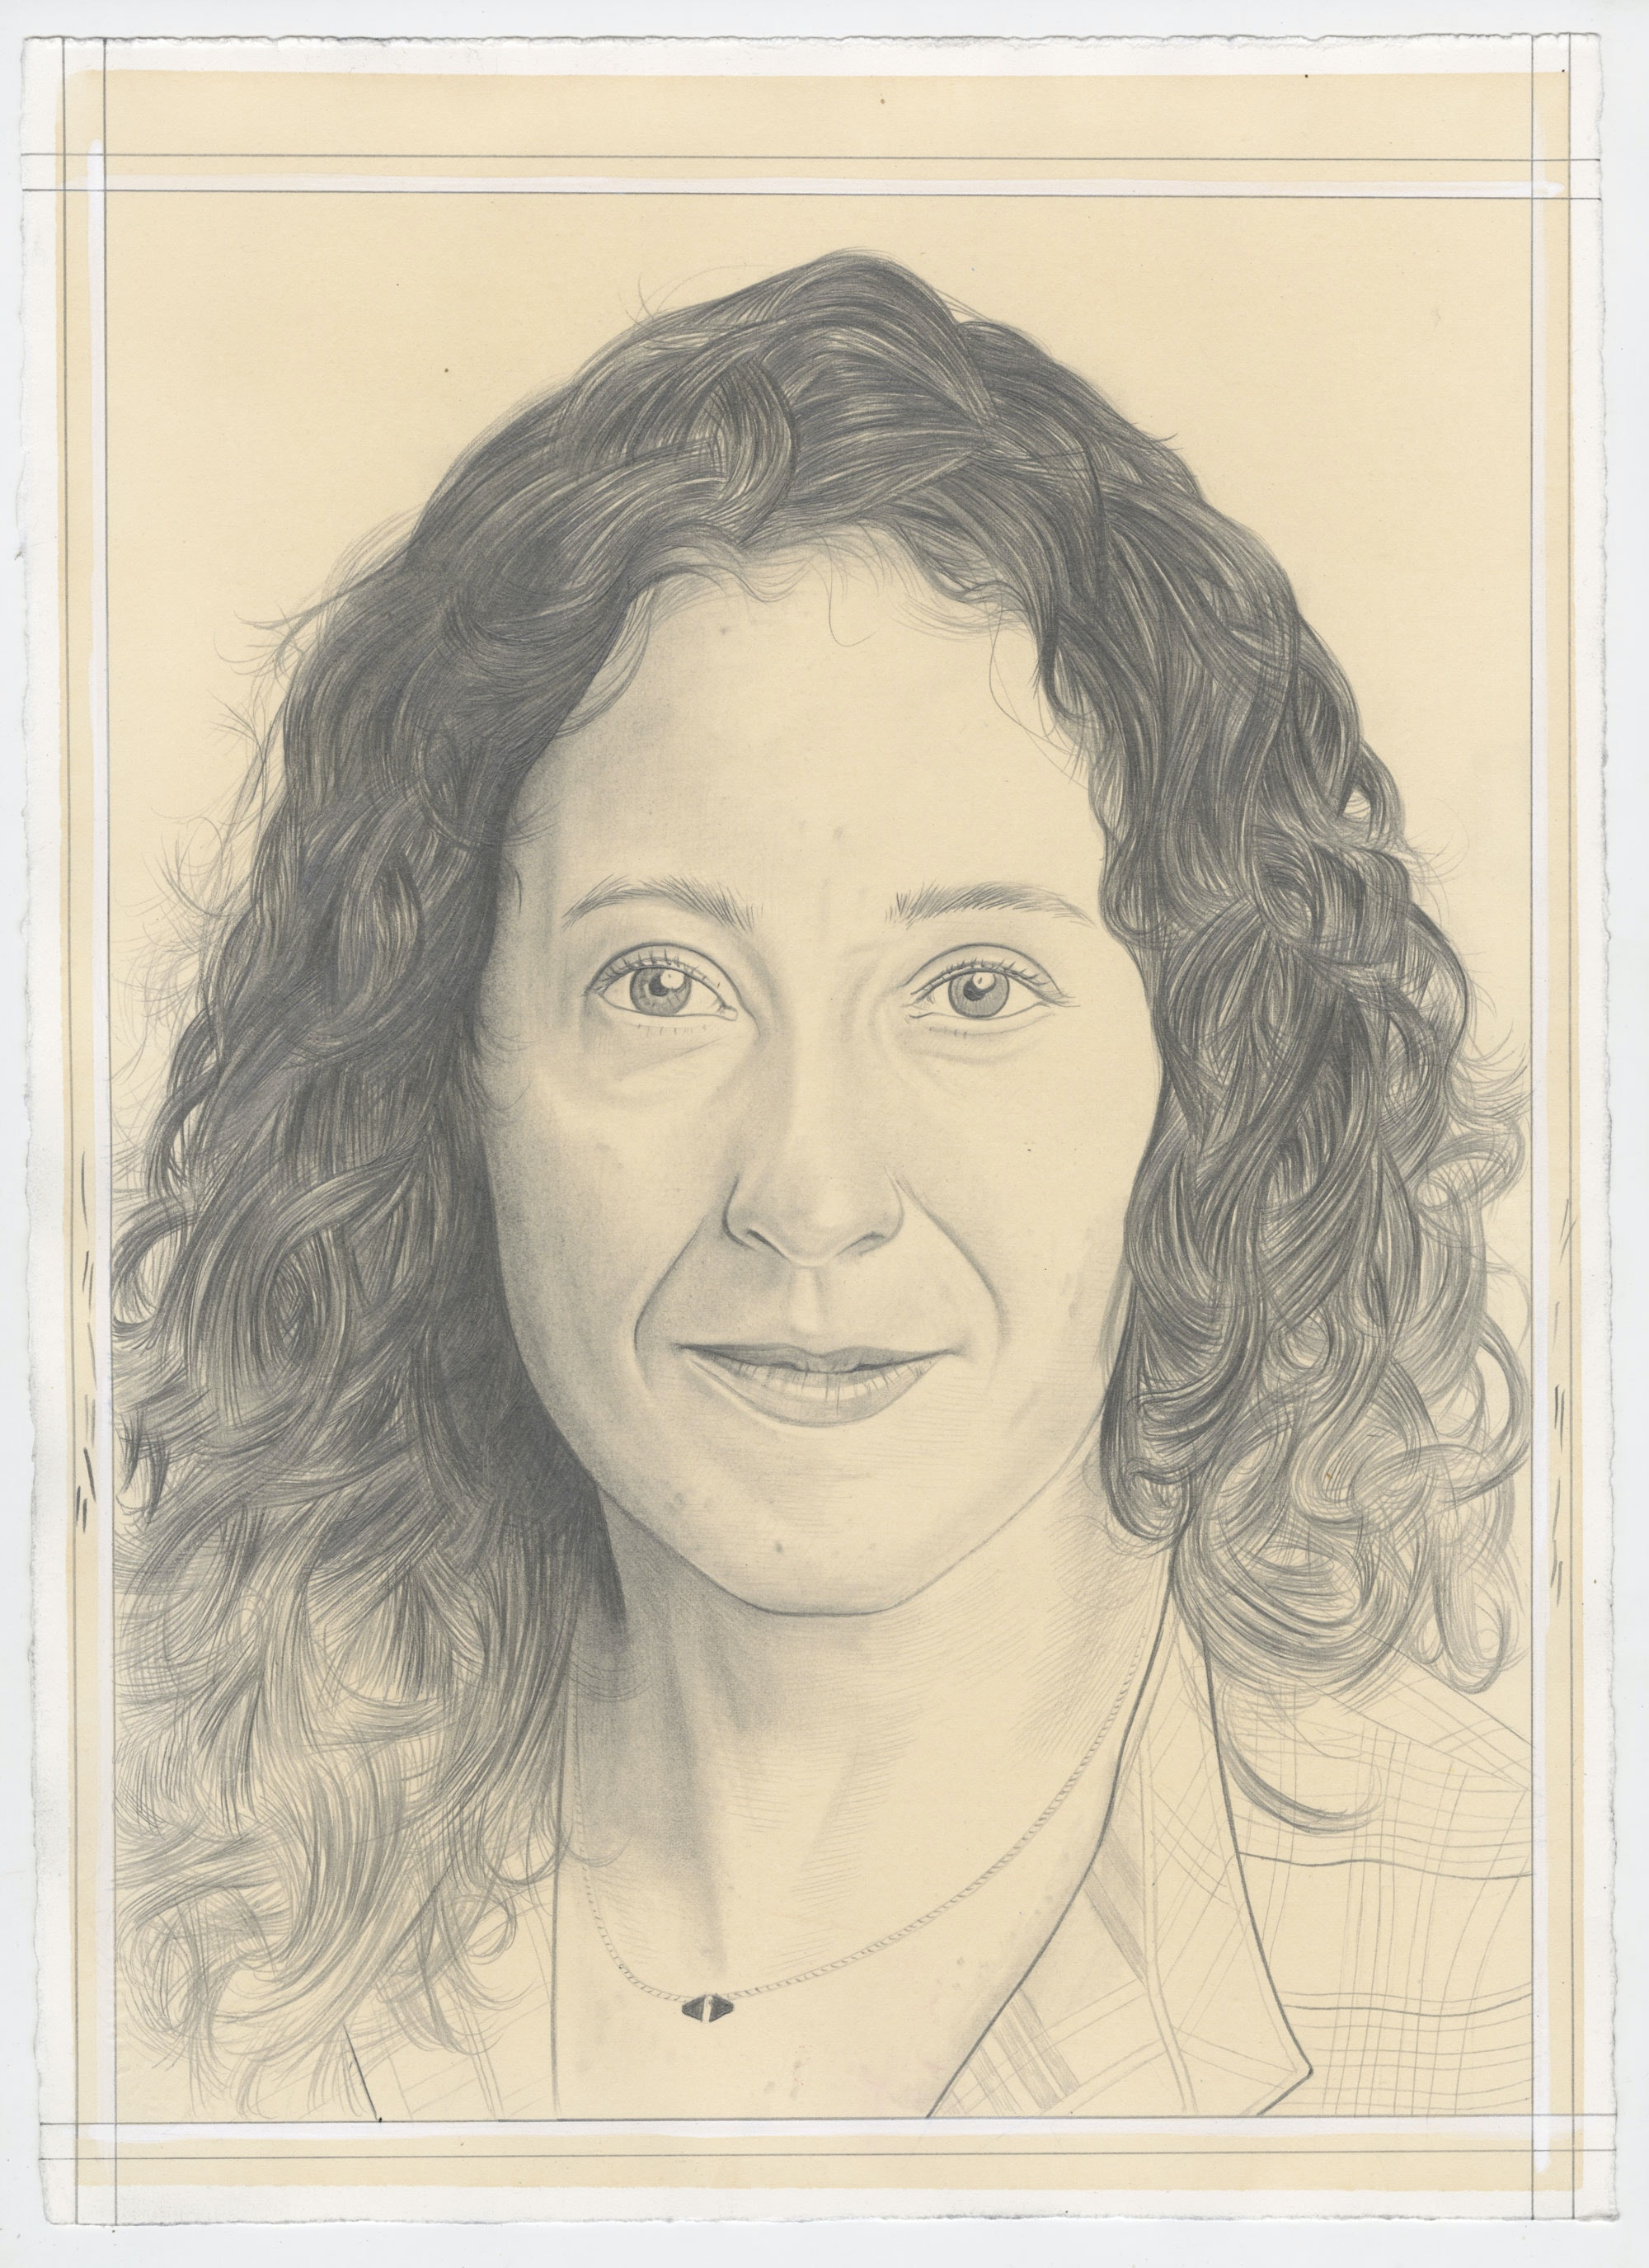 Portrait of Aliza Nisenbaum, pencil on paper by Phong Bui.